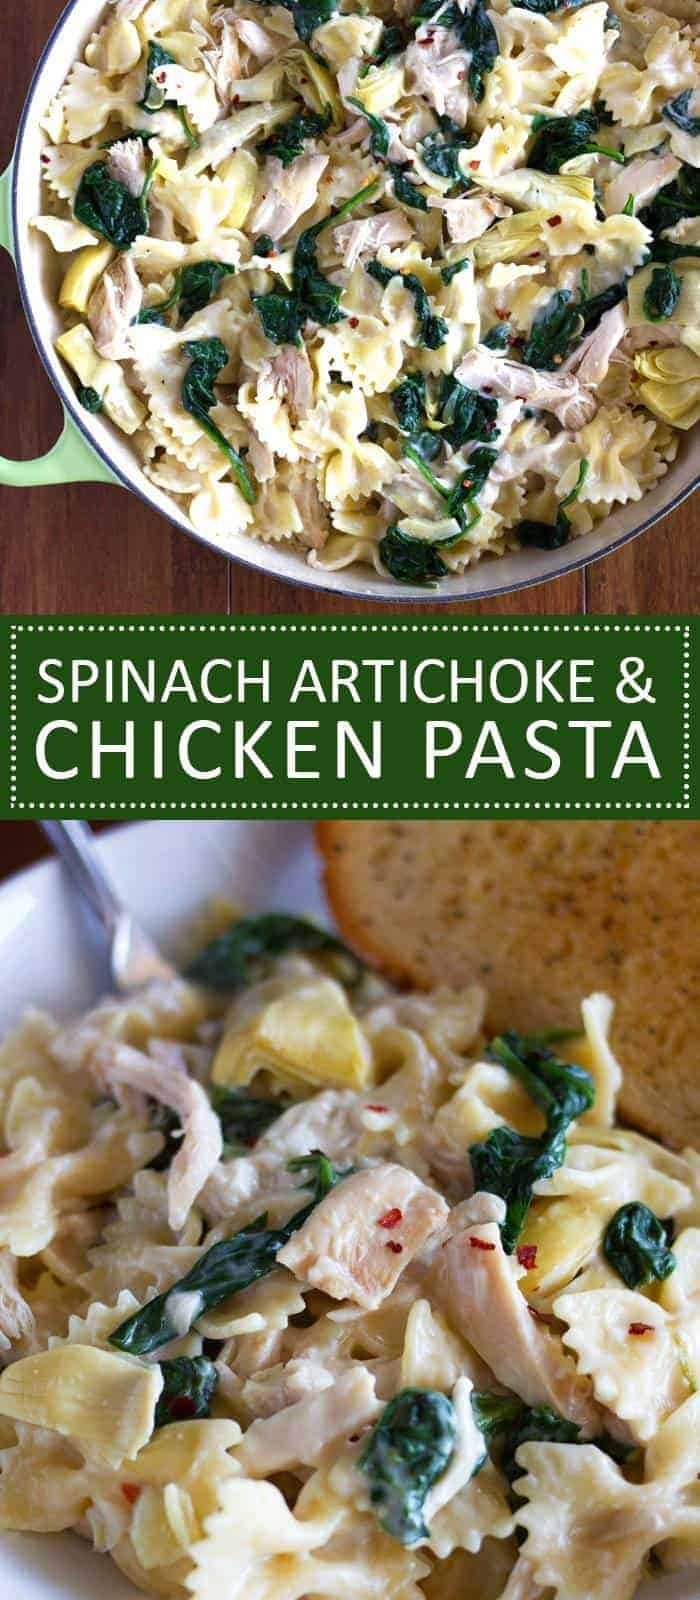 This quick and easy Spinach Artichoke Chicken Pasta is so creamy and delicious!